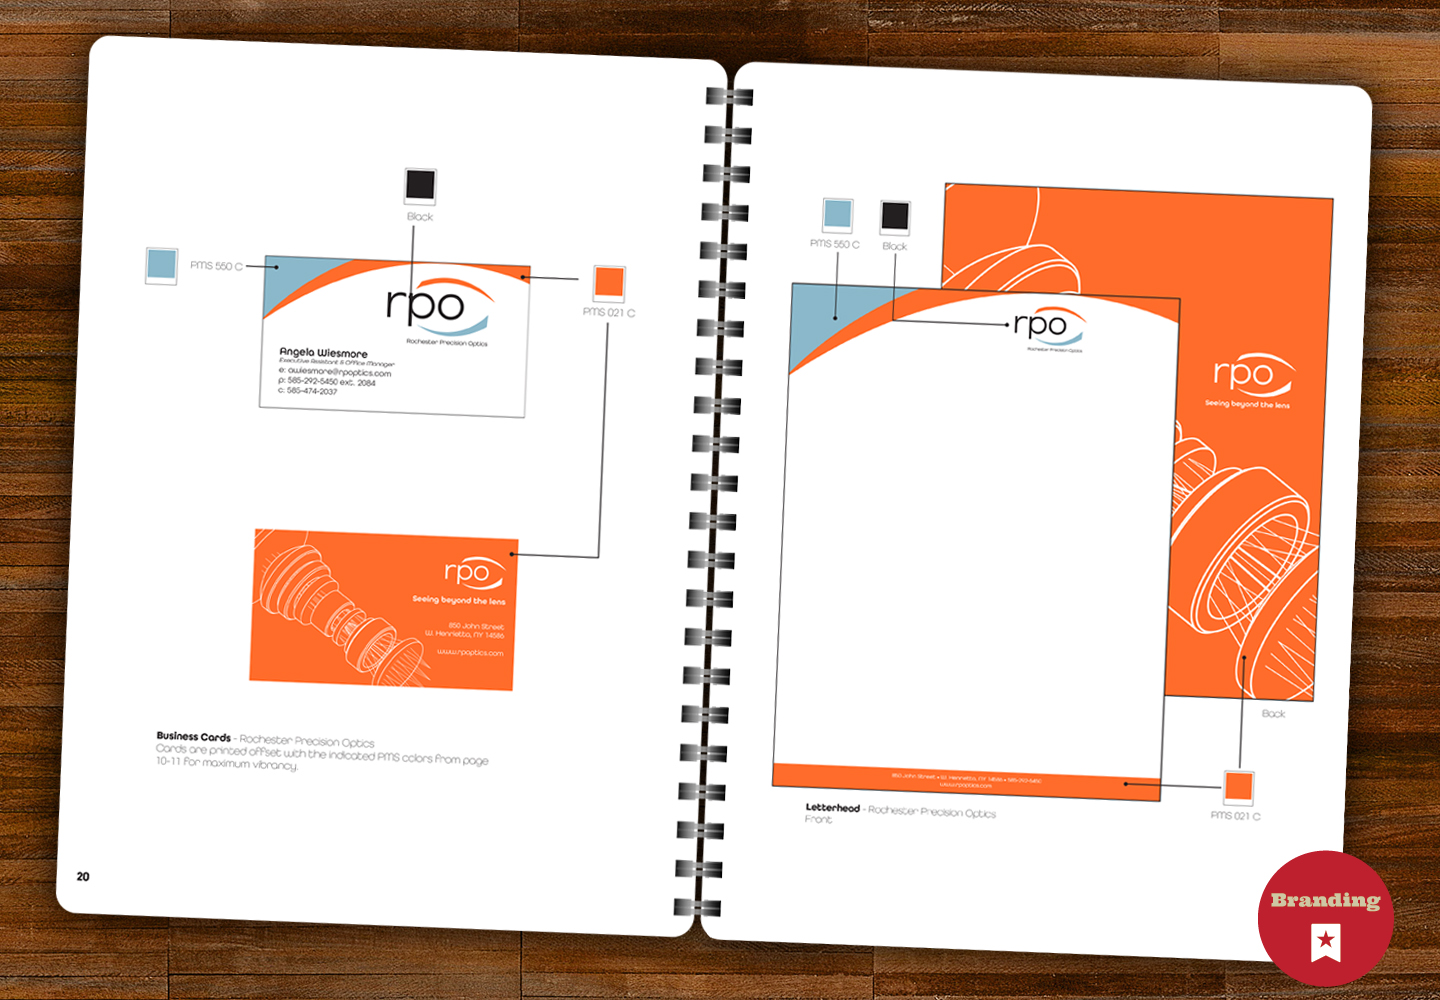 RPO_Brand Manual Spread 1.jpg